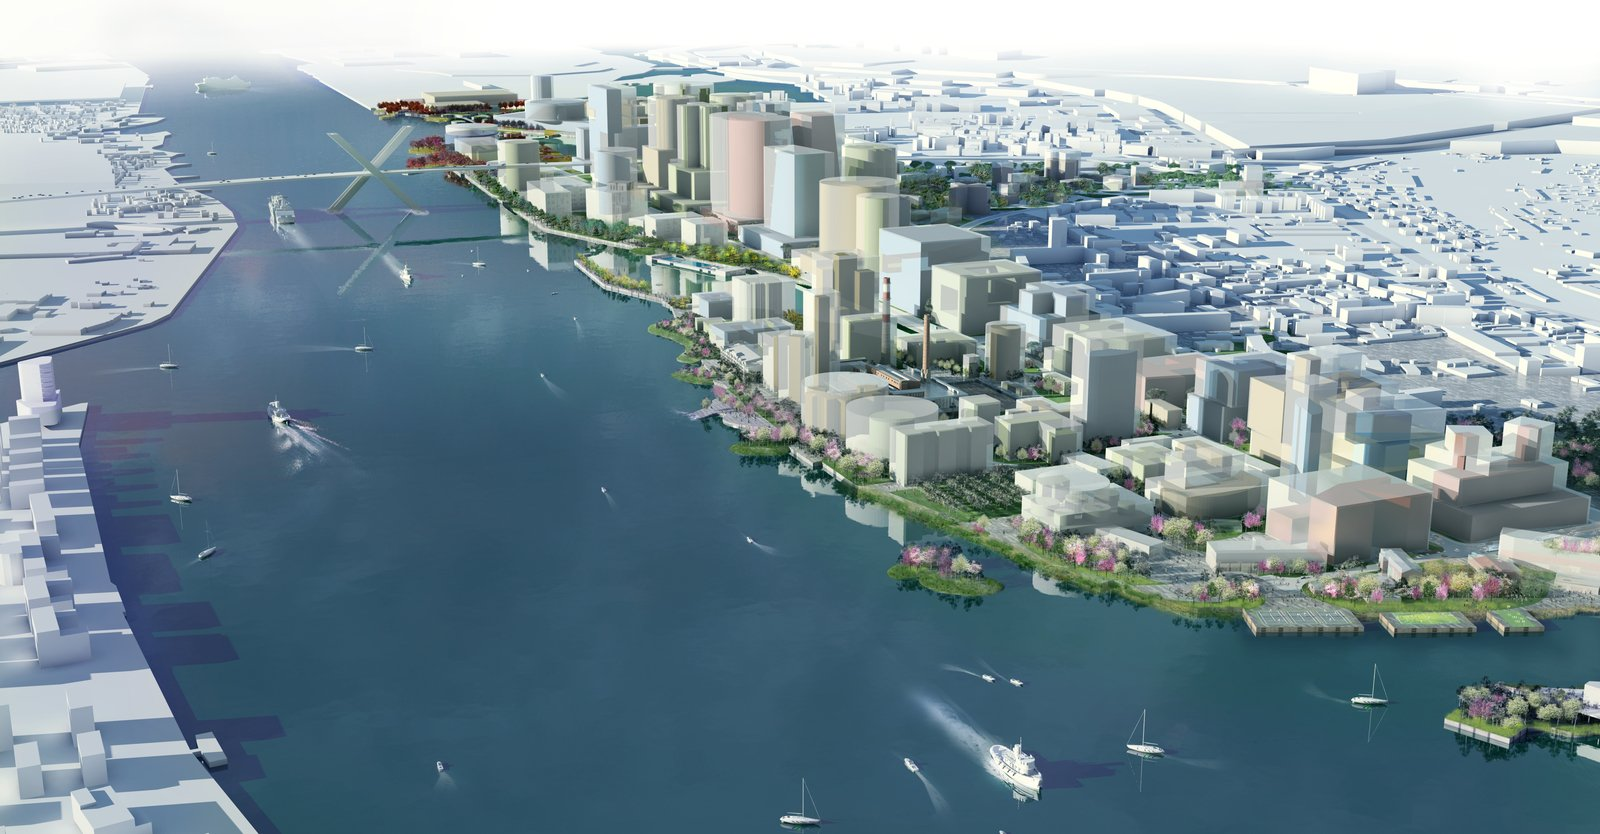 Riga Port City (Image: OMA visualisation)